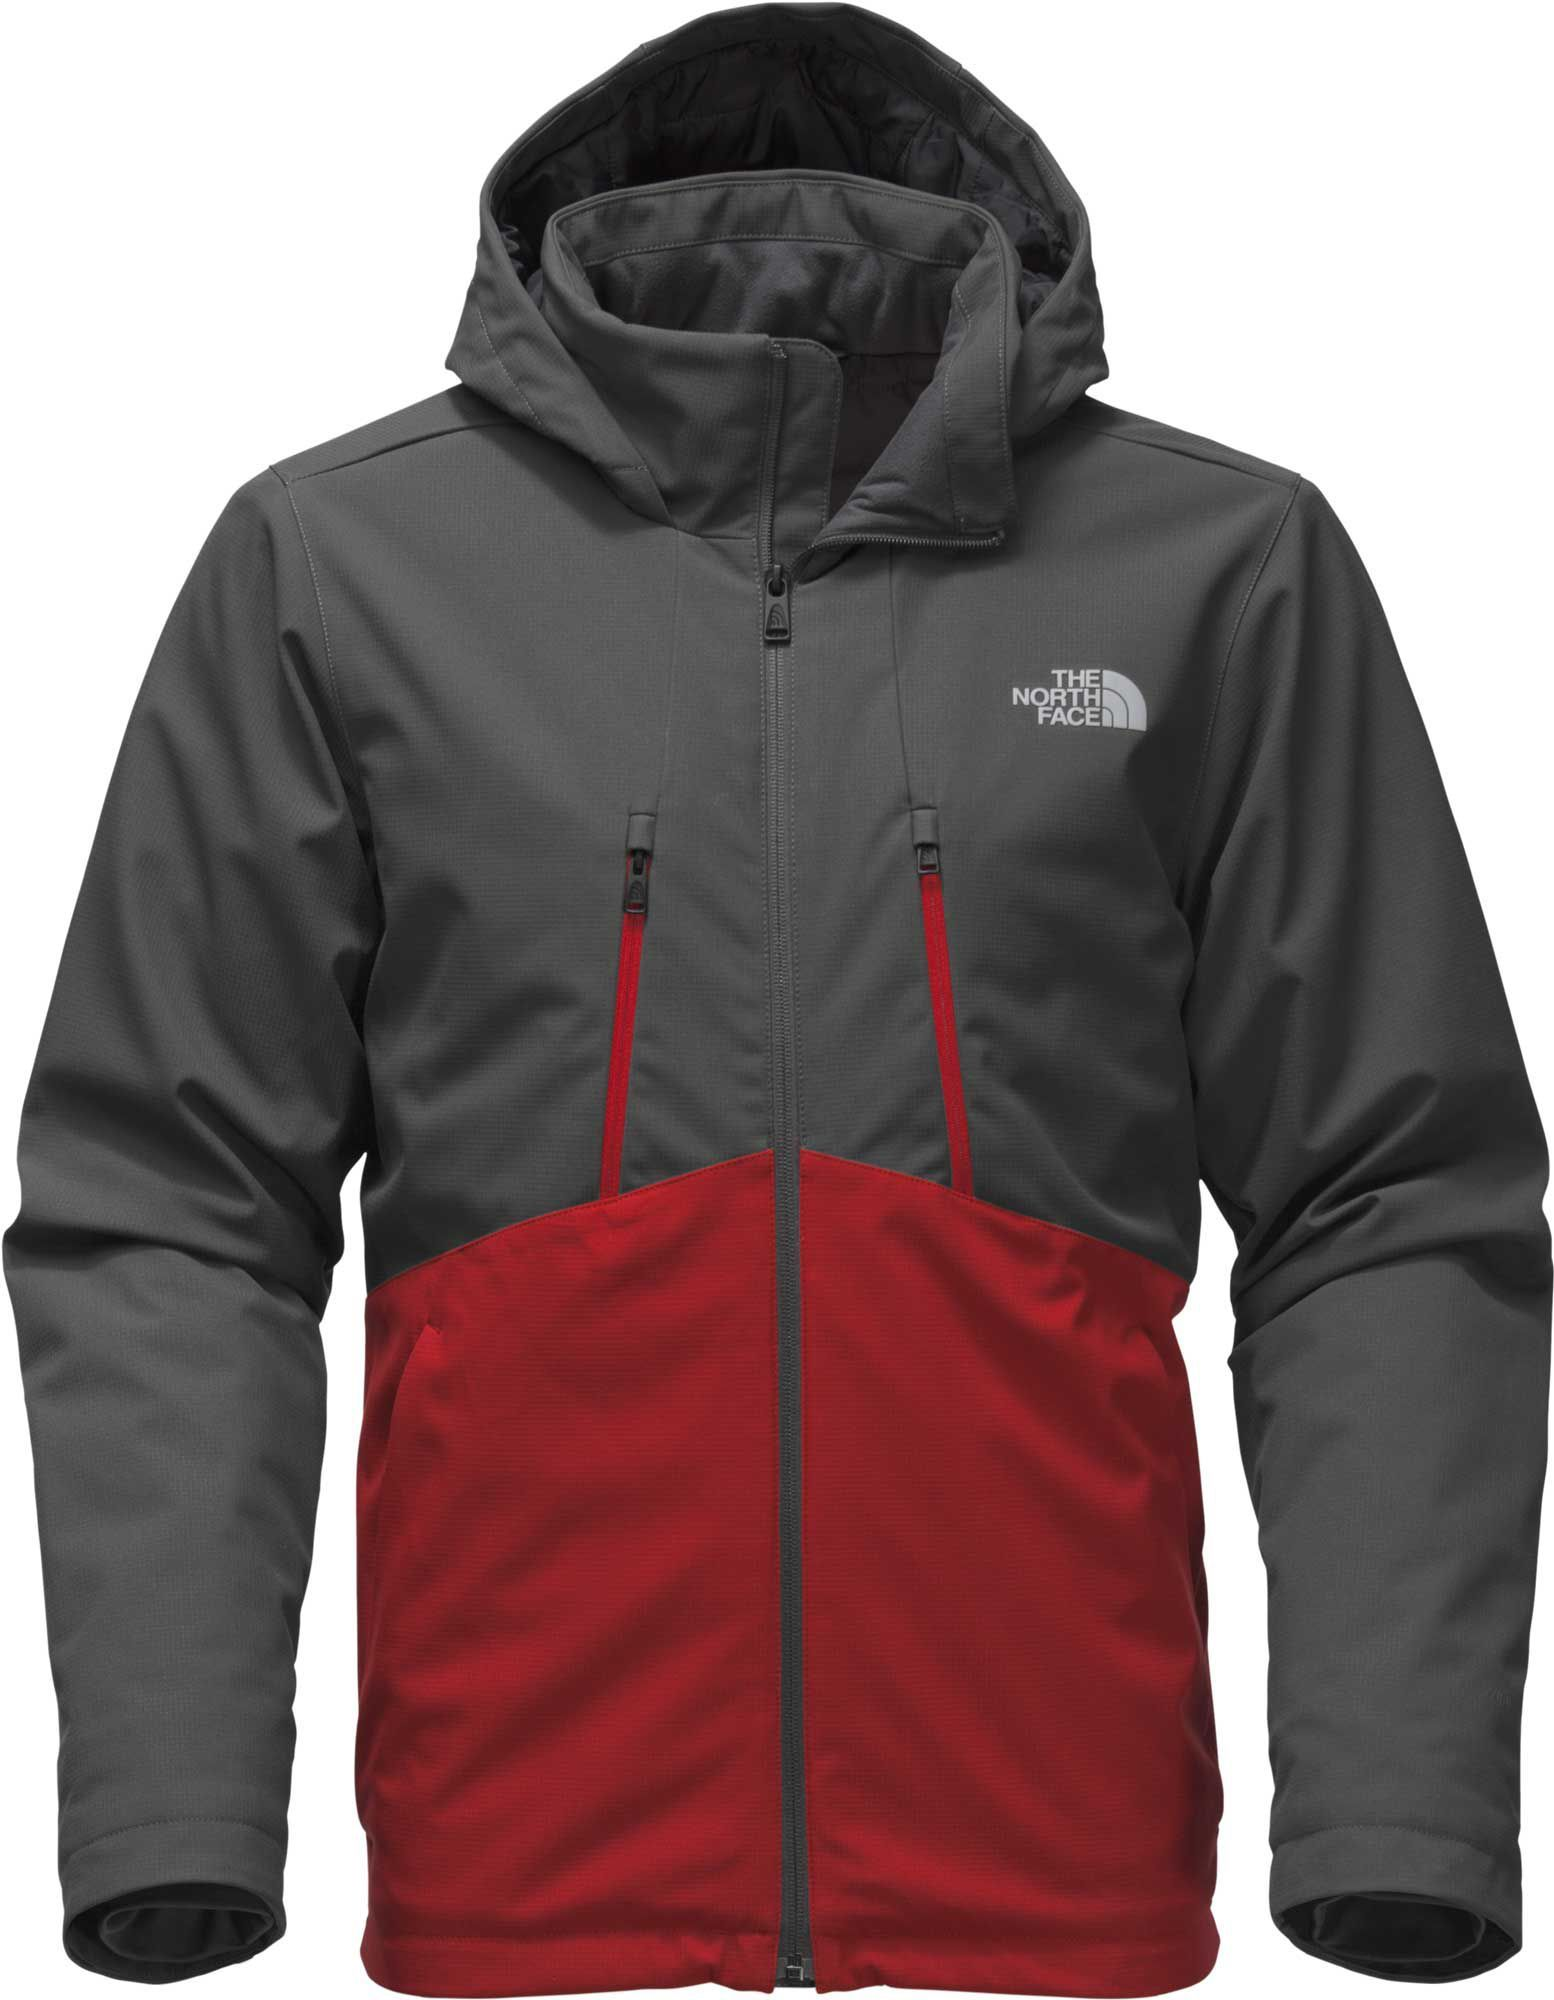 942025a501ec The North Face Men s Apex Elevation Insulated Jacket